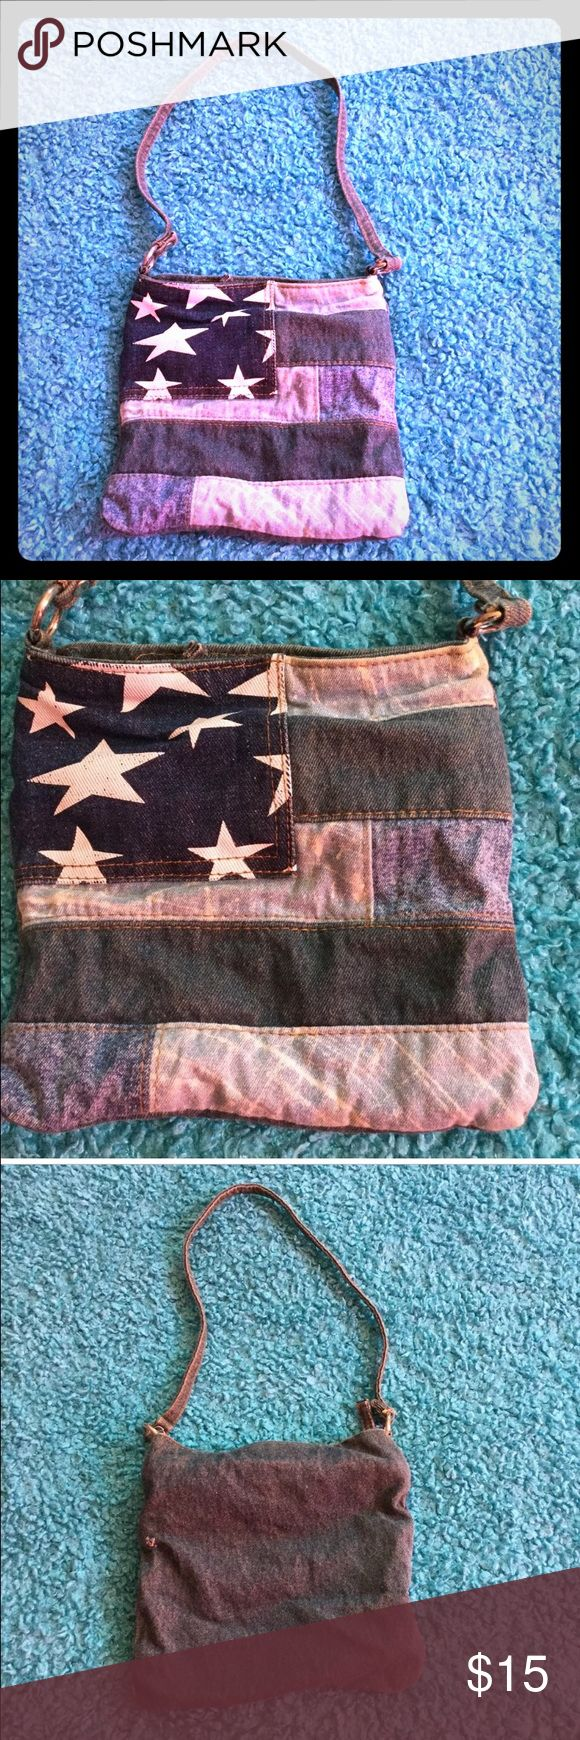 90s denim patchwork flag bag Small shoulder from the 90s with denim patchwork detail American flag design. Holds a good amount essentials plus some💕💫💕 Bags